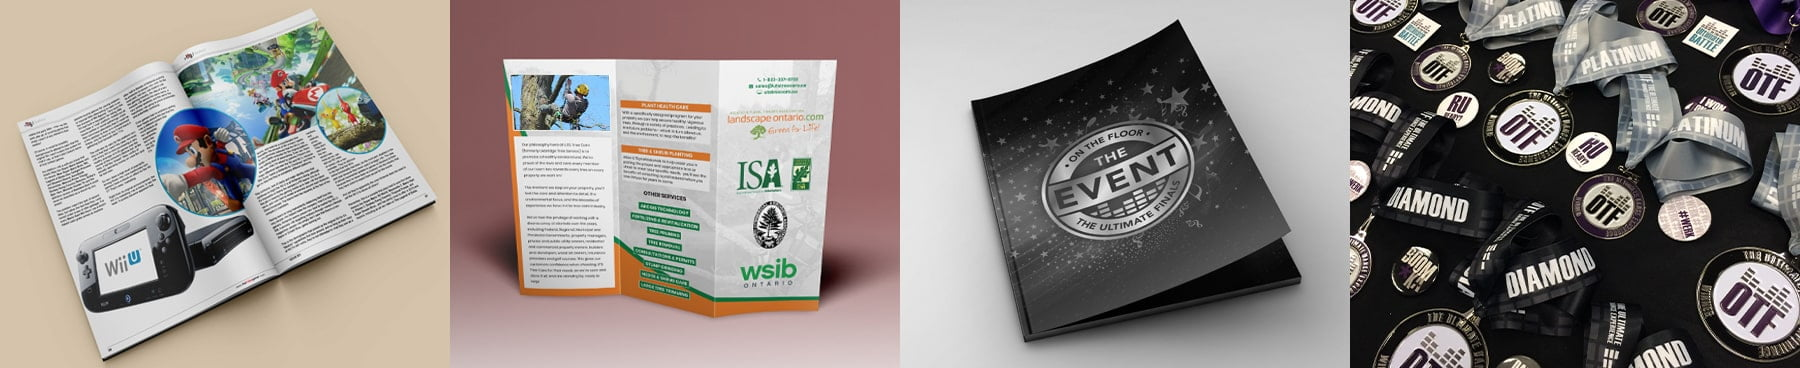 An image composition showing a magazine, tri-fold flyer, event program, and winners medals designed by One Guy Creative